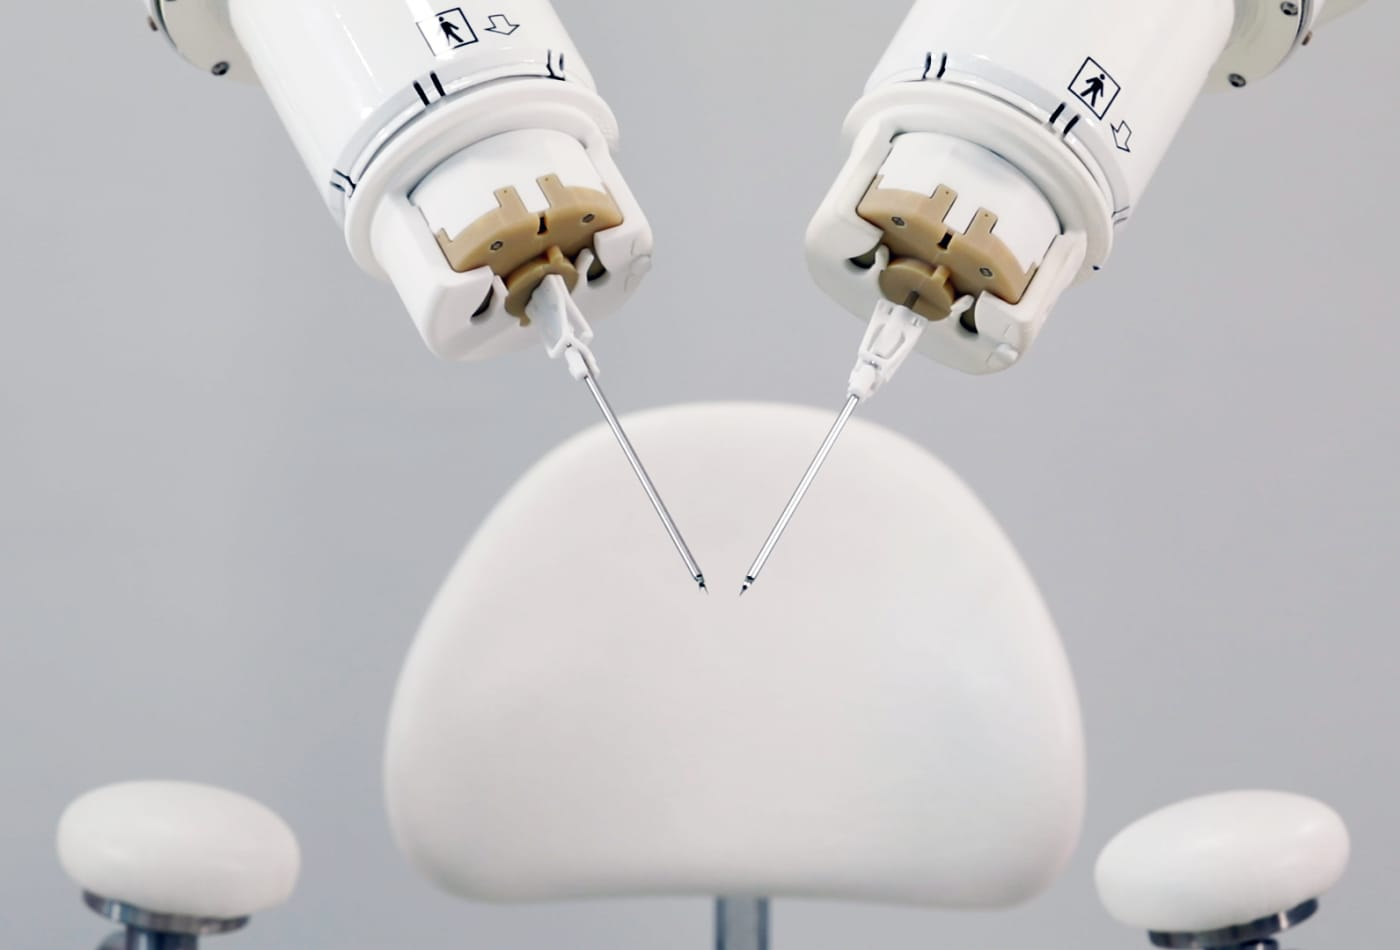 Robotic system from Europe will revolutionize microsurgery